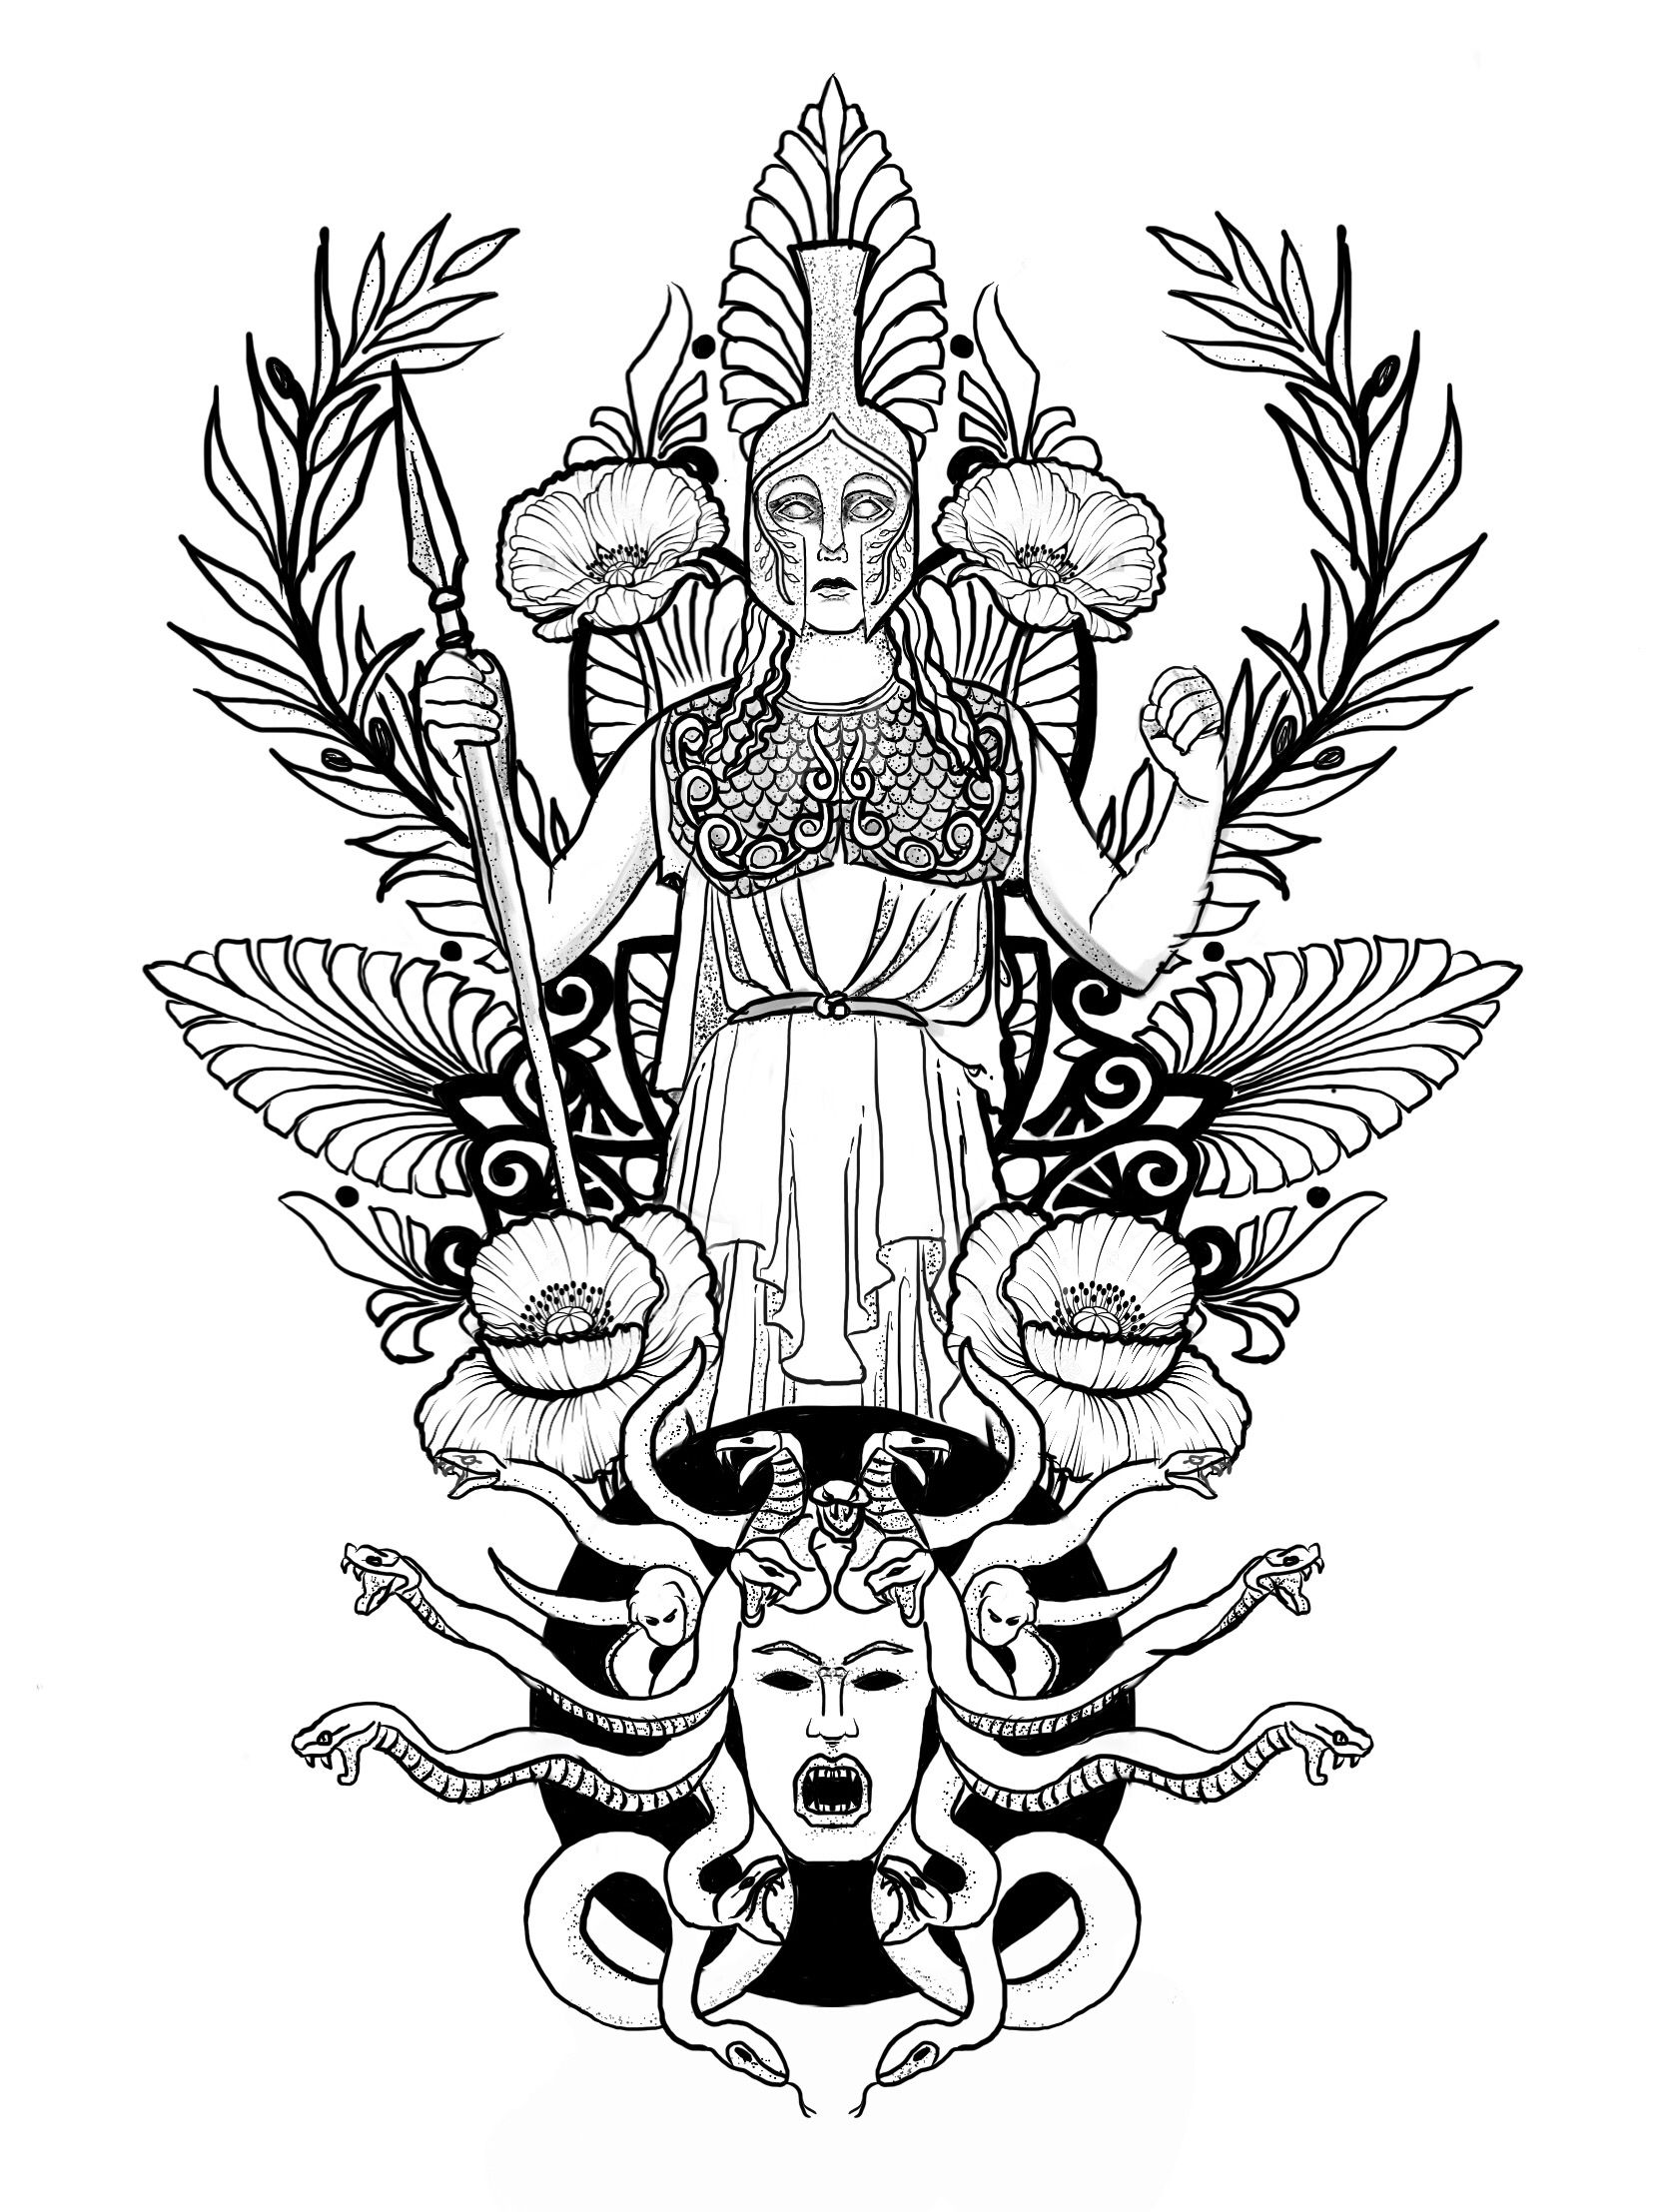 Tattoo Design Athena Tattoo Reference For Shelby Pinterest